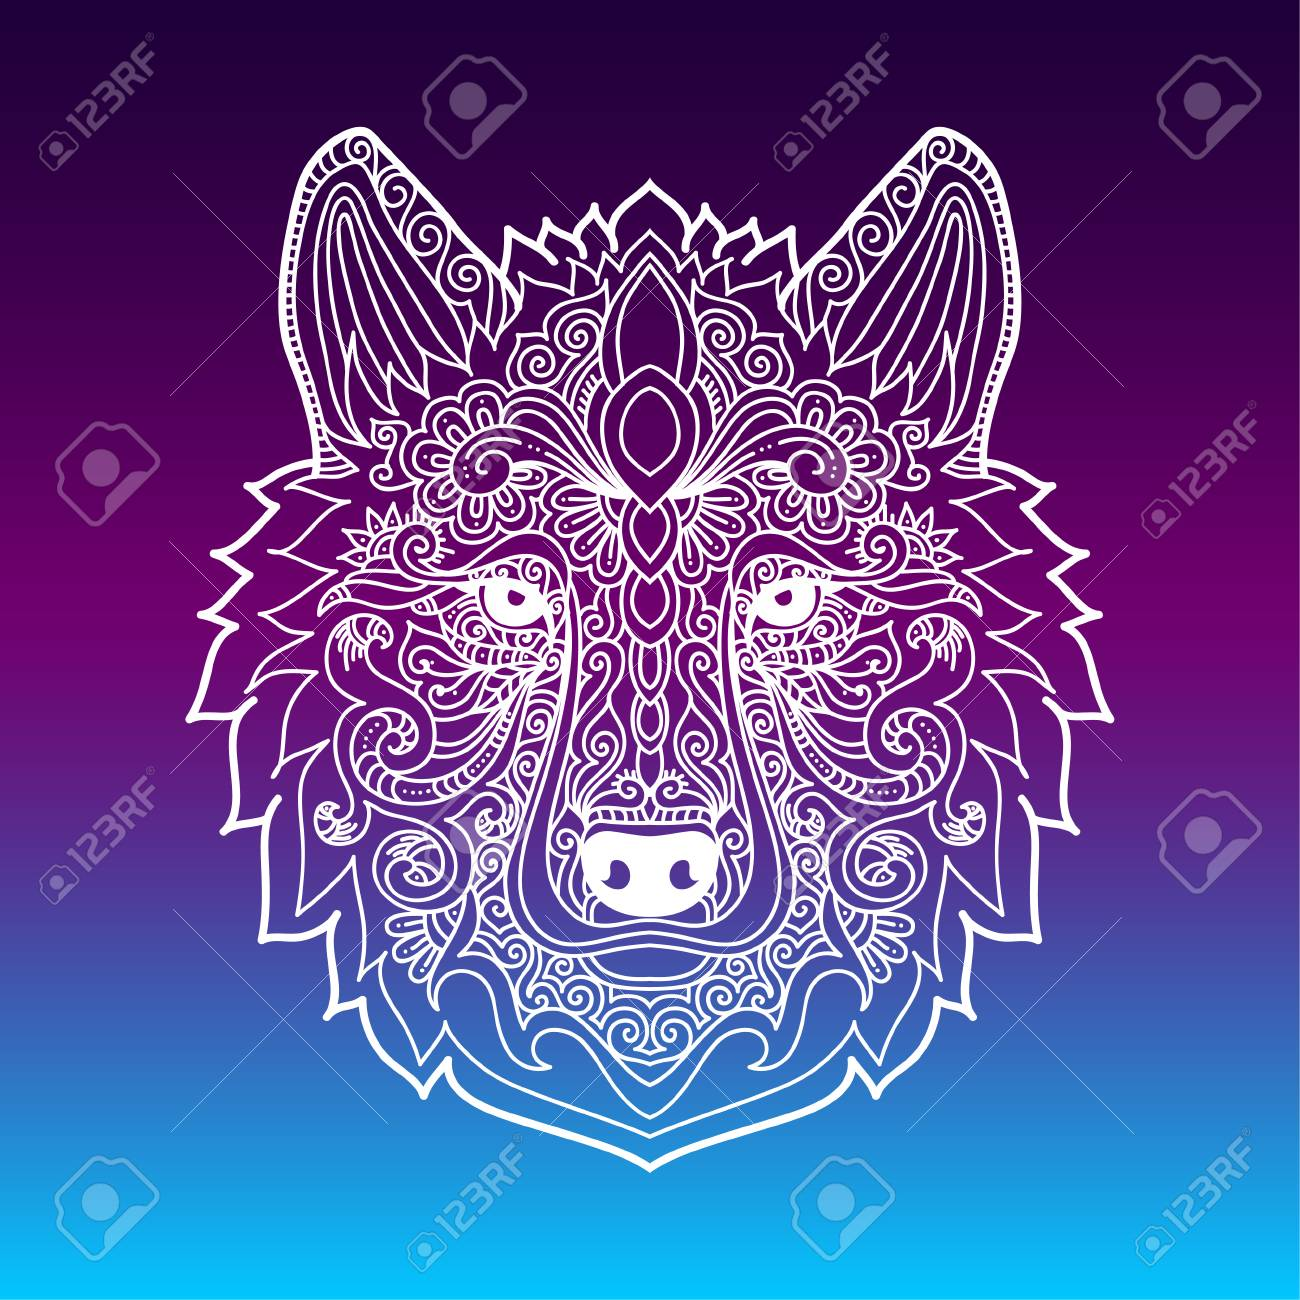 Hand drawn wolf with ethnic floral doodle pattern zentangle style